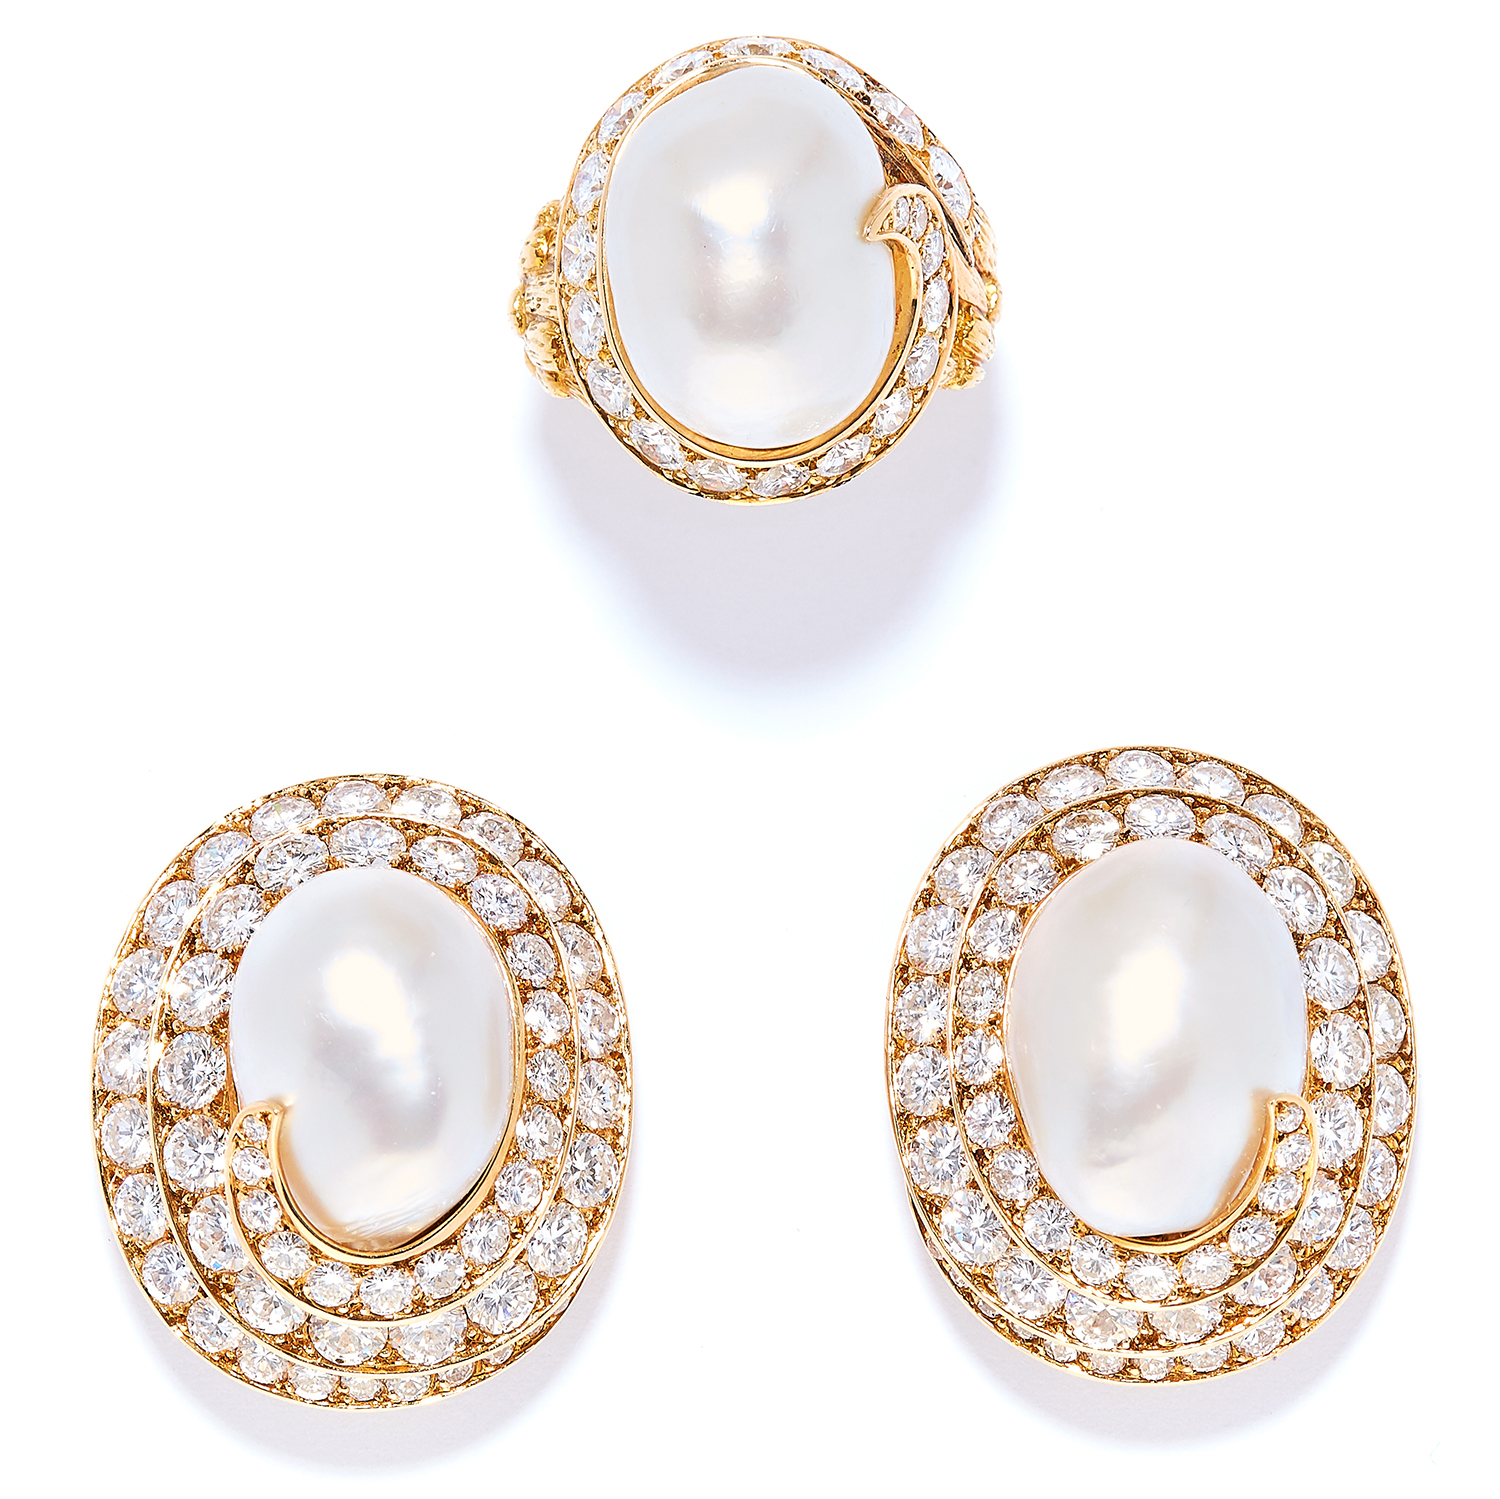 Los 56 - VINTAGE NATURAL PEARL AND DIAMOND RING AND EARRINGS SUITE, VAN CLEEF & ARPELS in 18ct yellow gold,